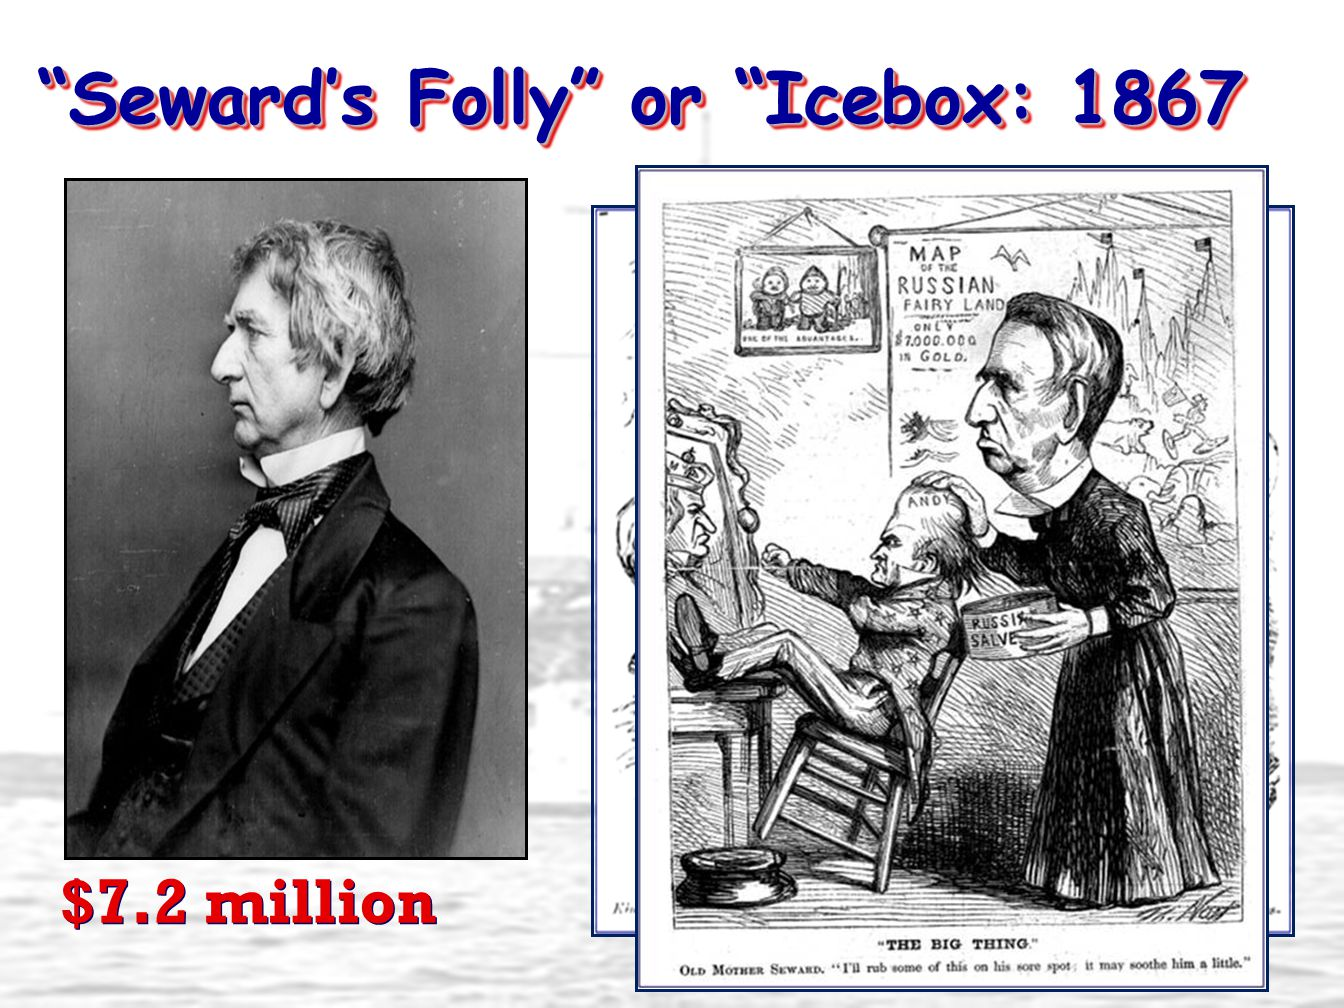 Seward's Folly or Icebox: 1867